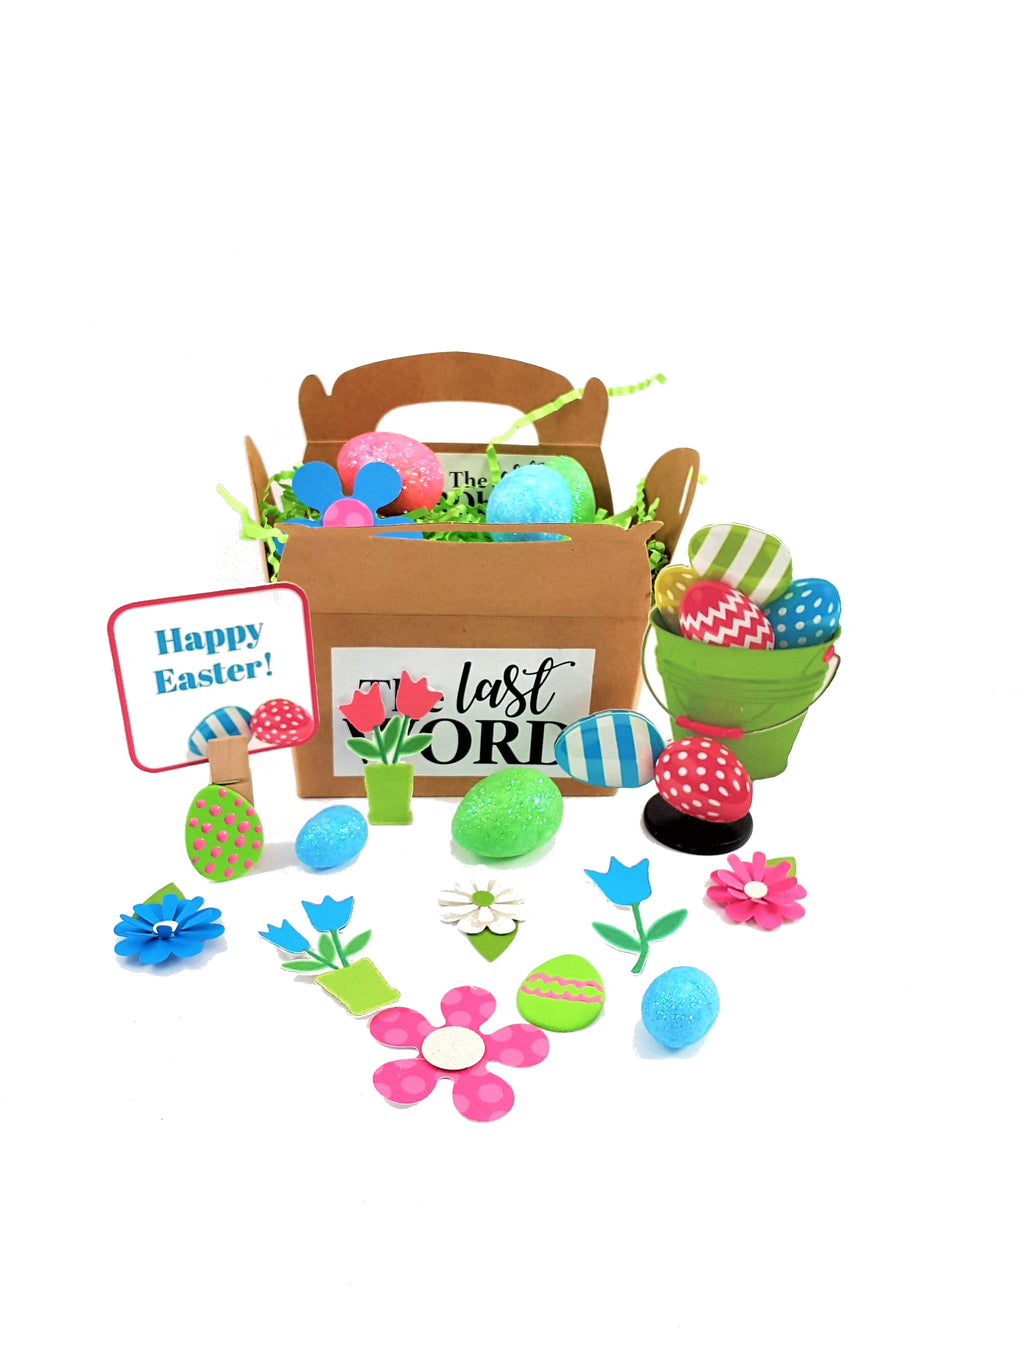 3D Easter card with Bucket of Eggs - includes candy & other goodies - TheLastWordBish.com